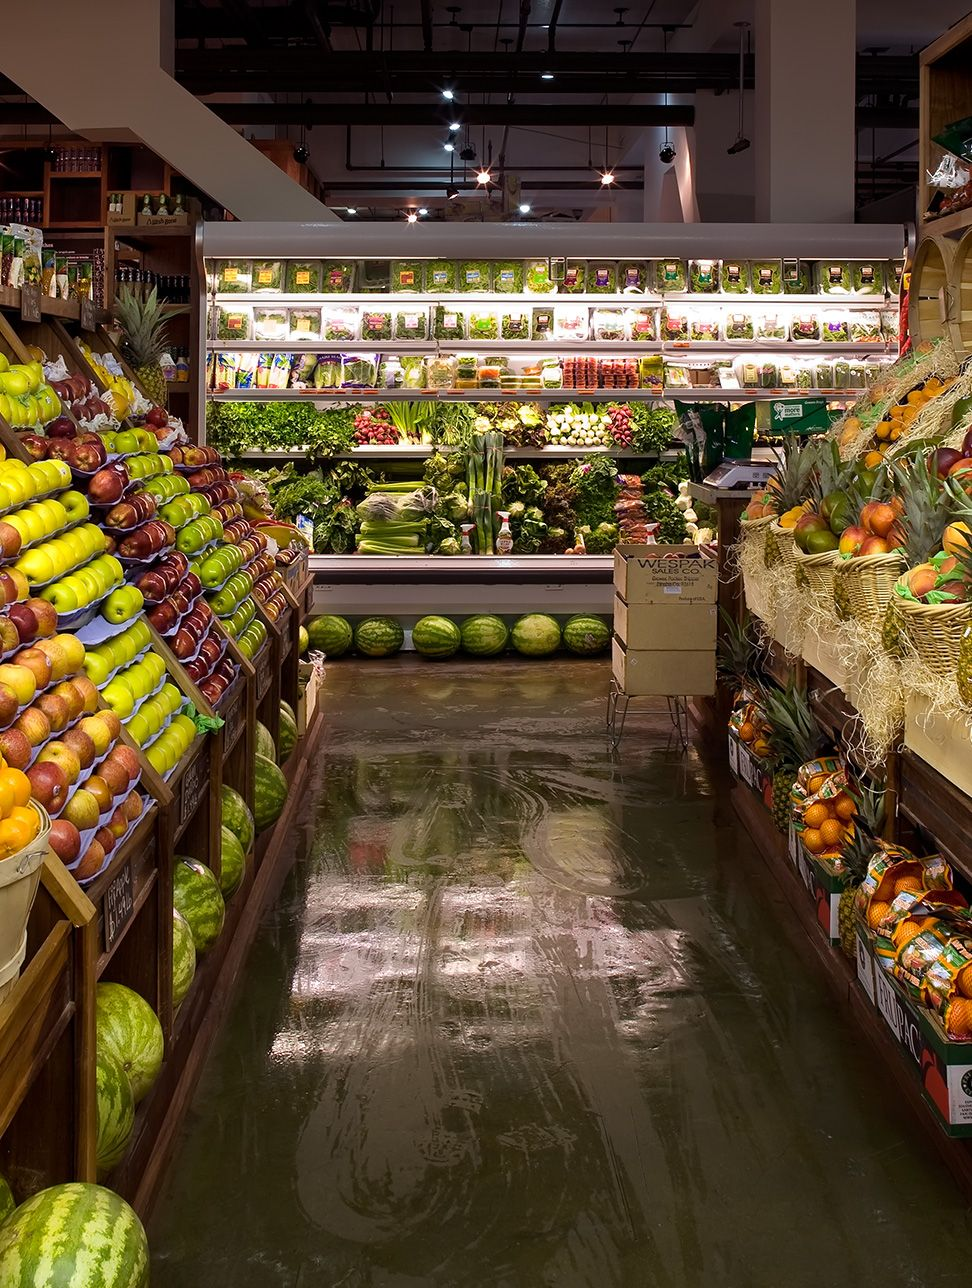 Pin By Garrett Reil On Retail Grocery Store Design Charcuterie Display Fruit Shop